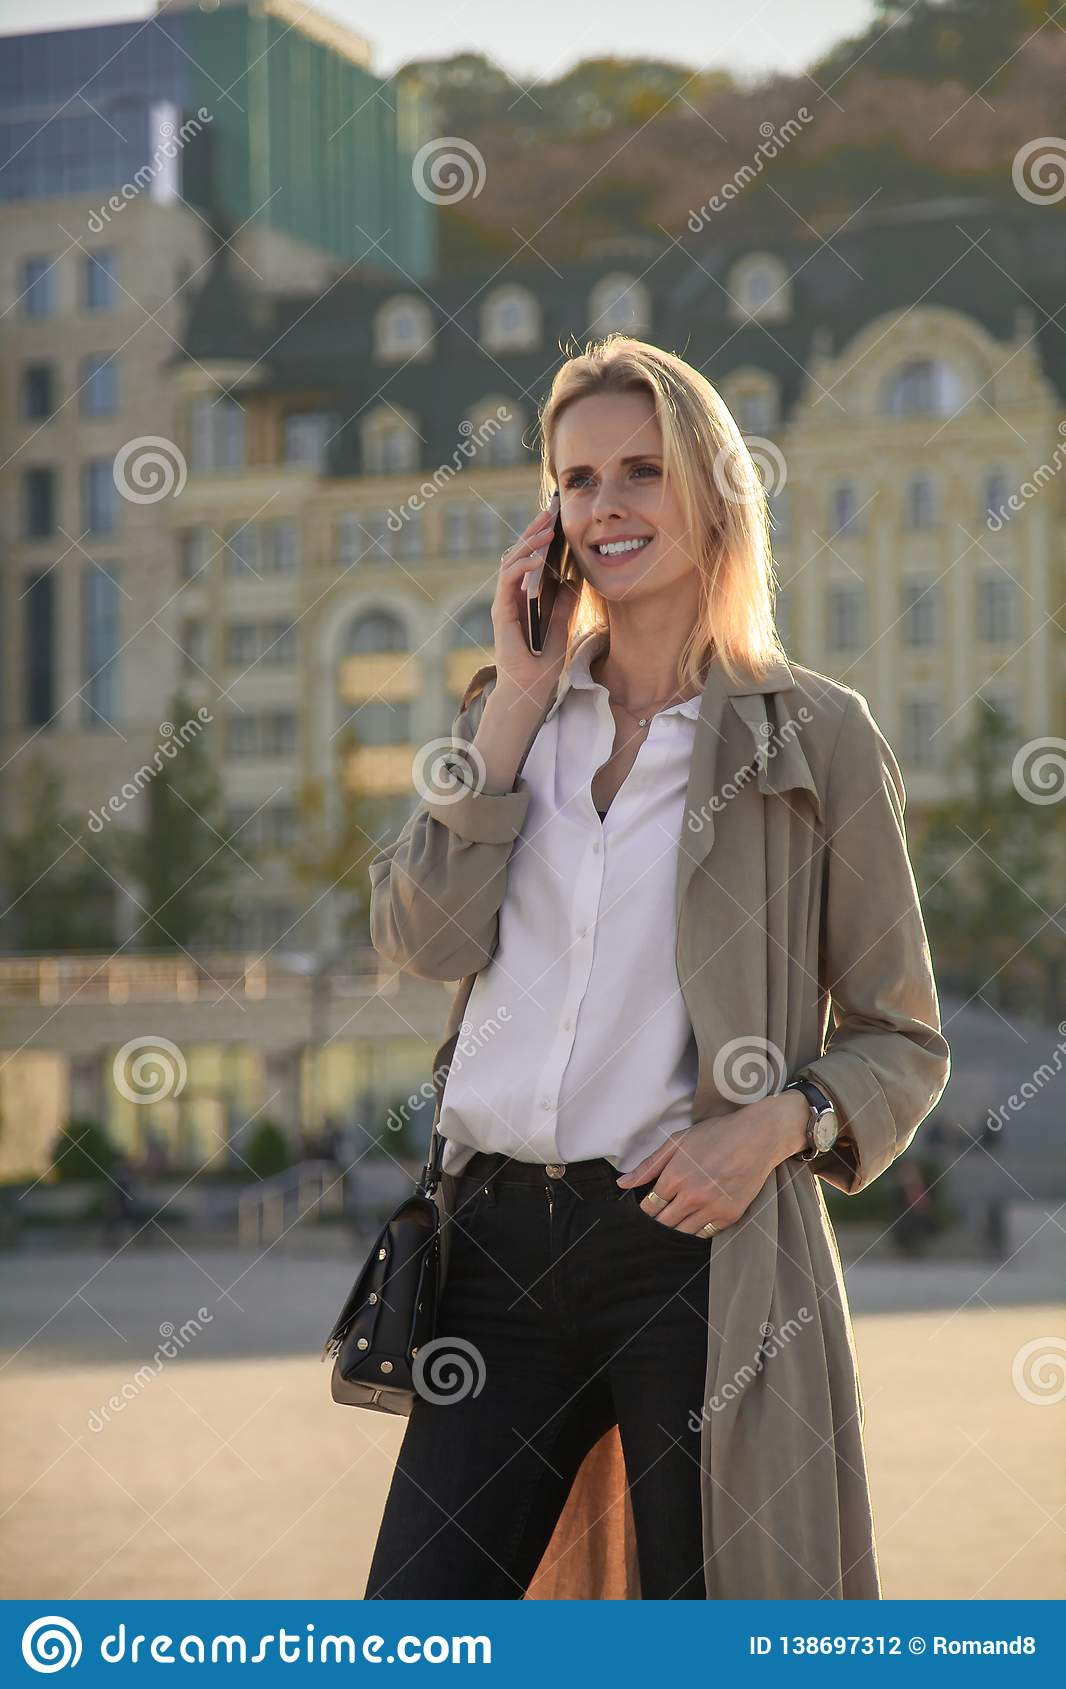 A young successful woman in a trench coat, walking in the street, speaking by her cell phone